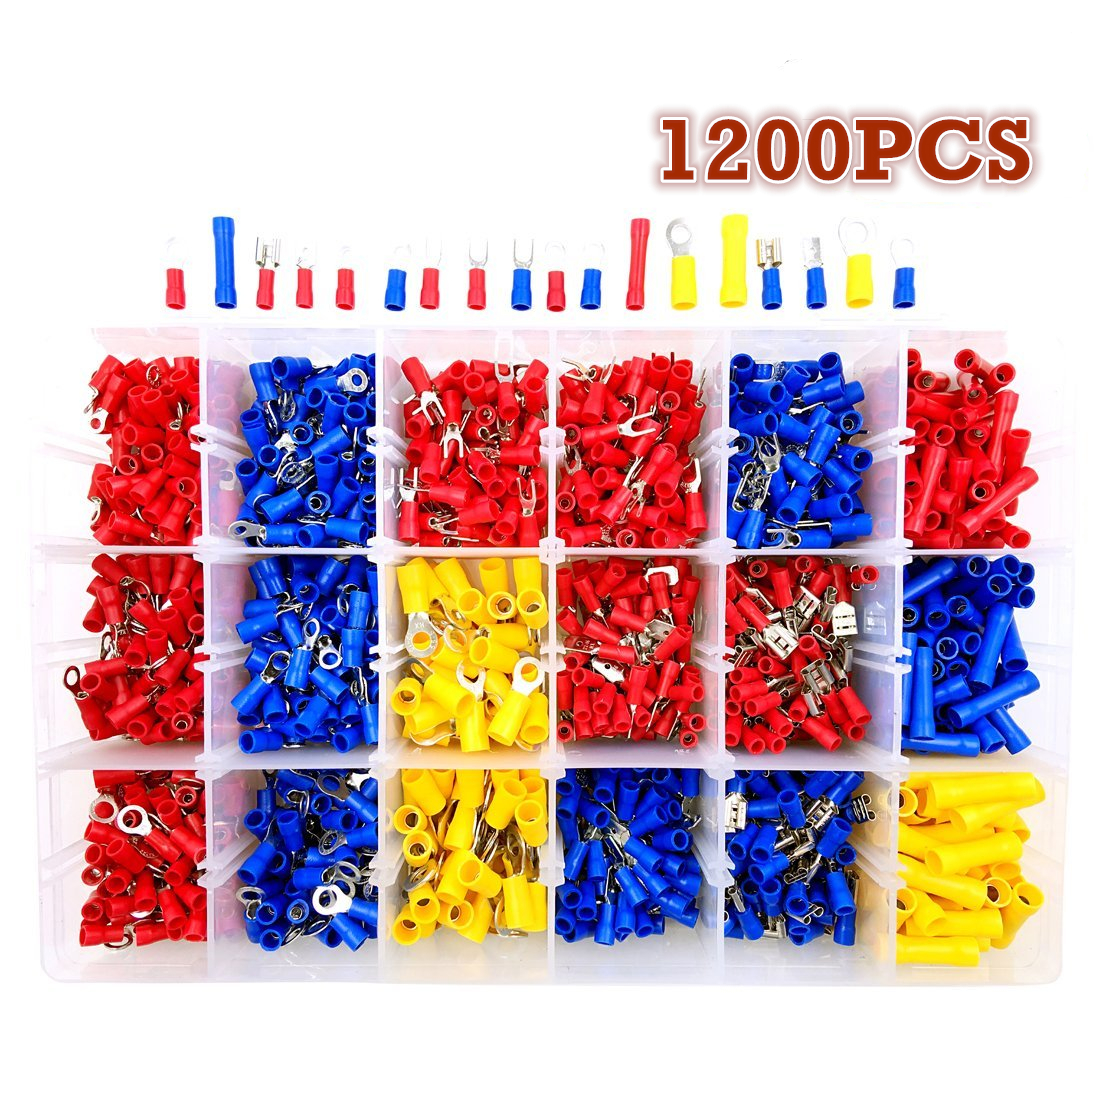 1200Pcs/Set Assorted Electrical Wire Crimp Terminals Red Blue Yellow Insulated Spade Cable Connectors 22-10AWG 1meter red 1meter black color silicon wire 10awg 12awg 14awg 16 awg flexible silicone wire for rc lipo battery connect cable